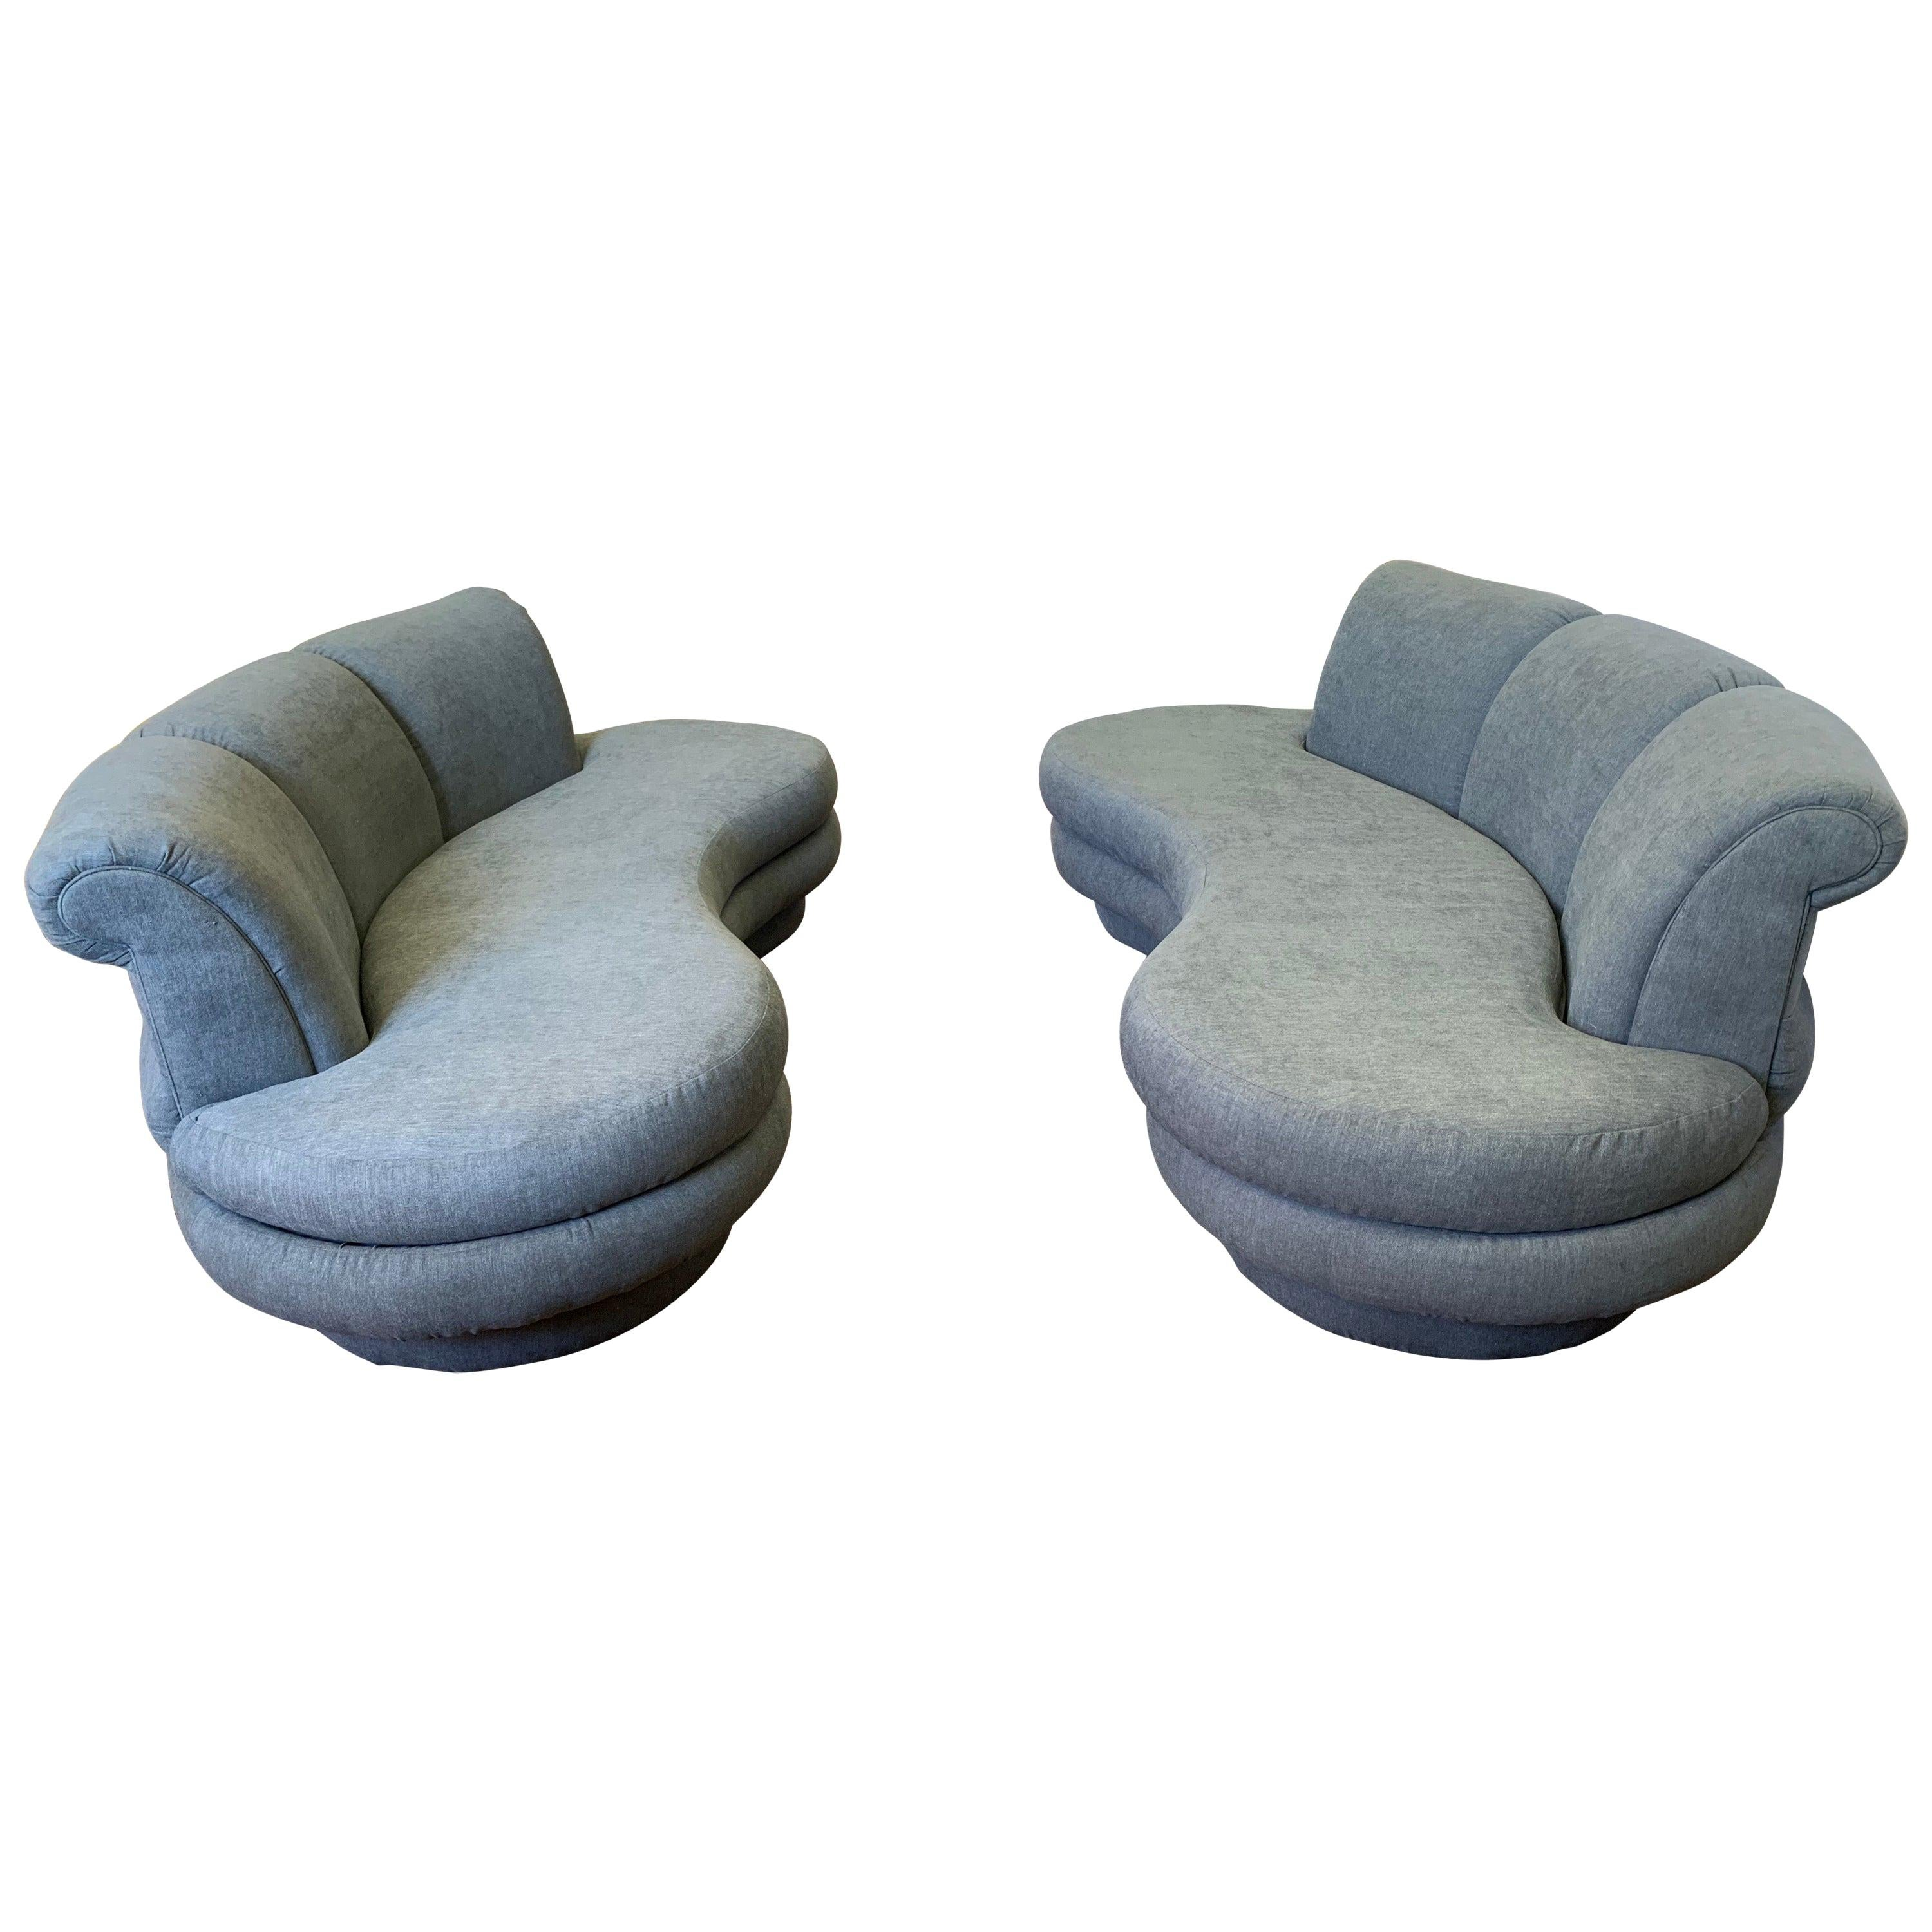 Matching Pearsall Comfort Design Cloud Sofas New Upholstered in Slate Gray, Pair